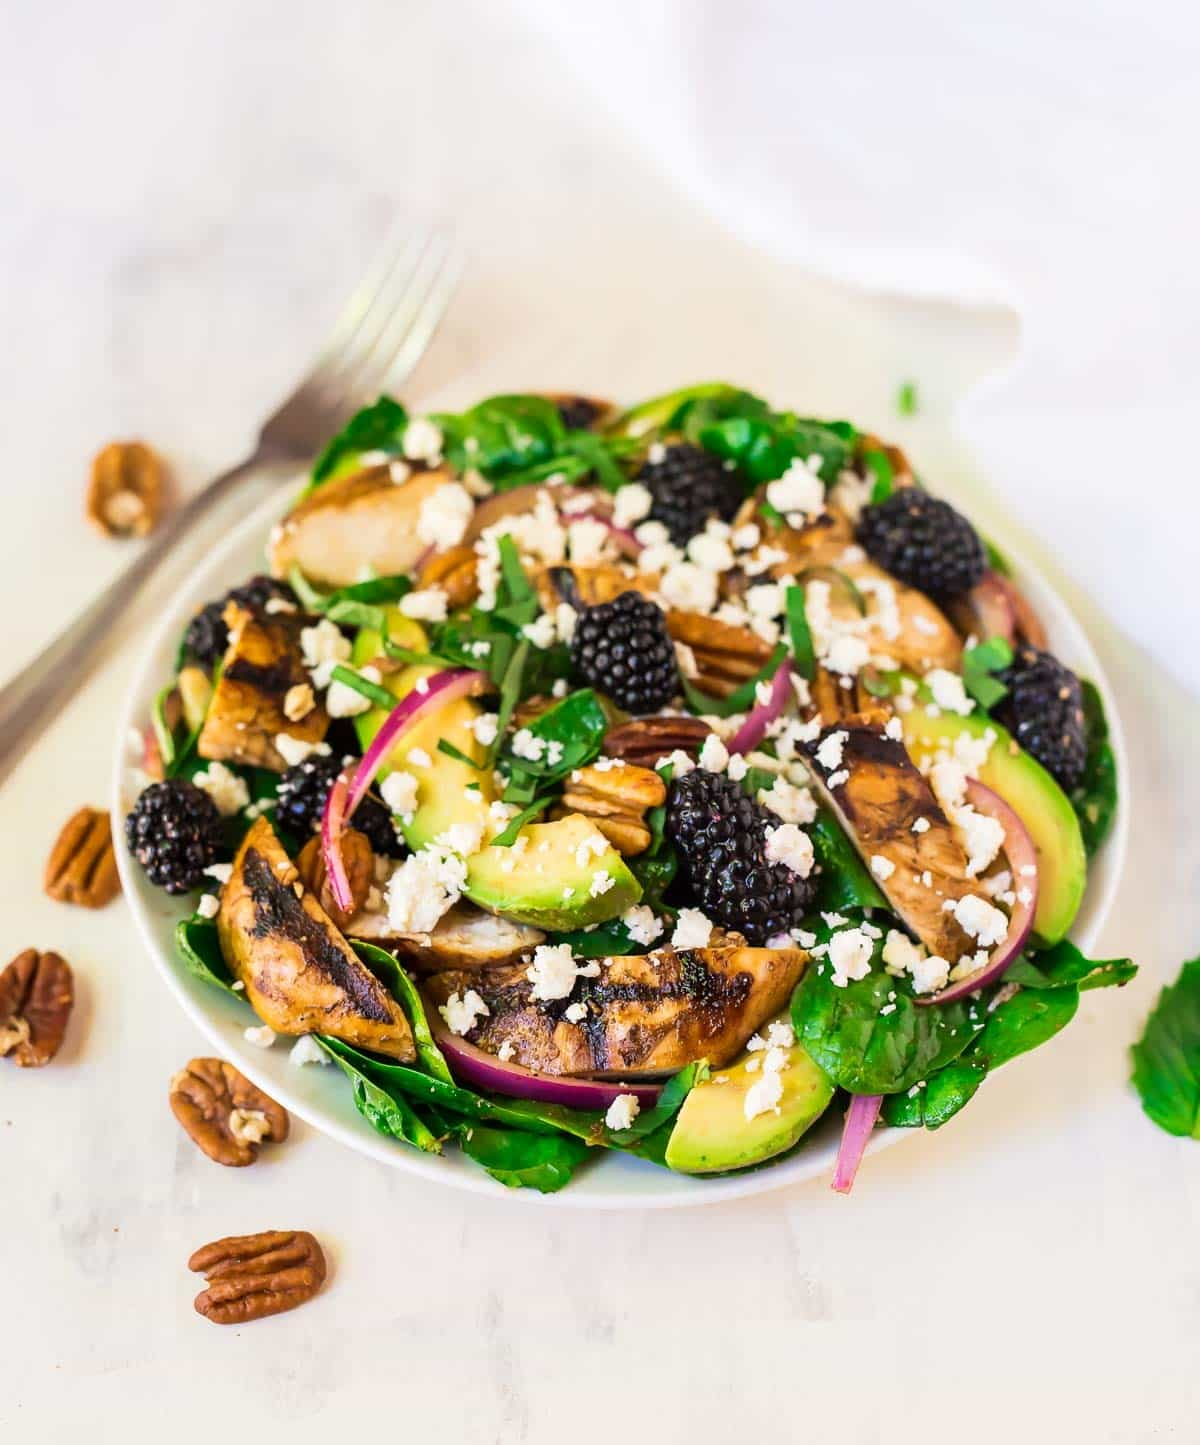 Healthy grilled balsamic chicken salad with blackberries in a bowl surrounded by whole pecans